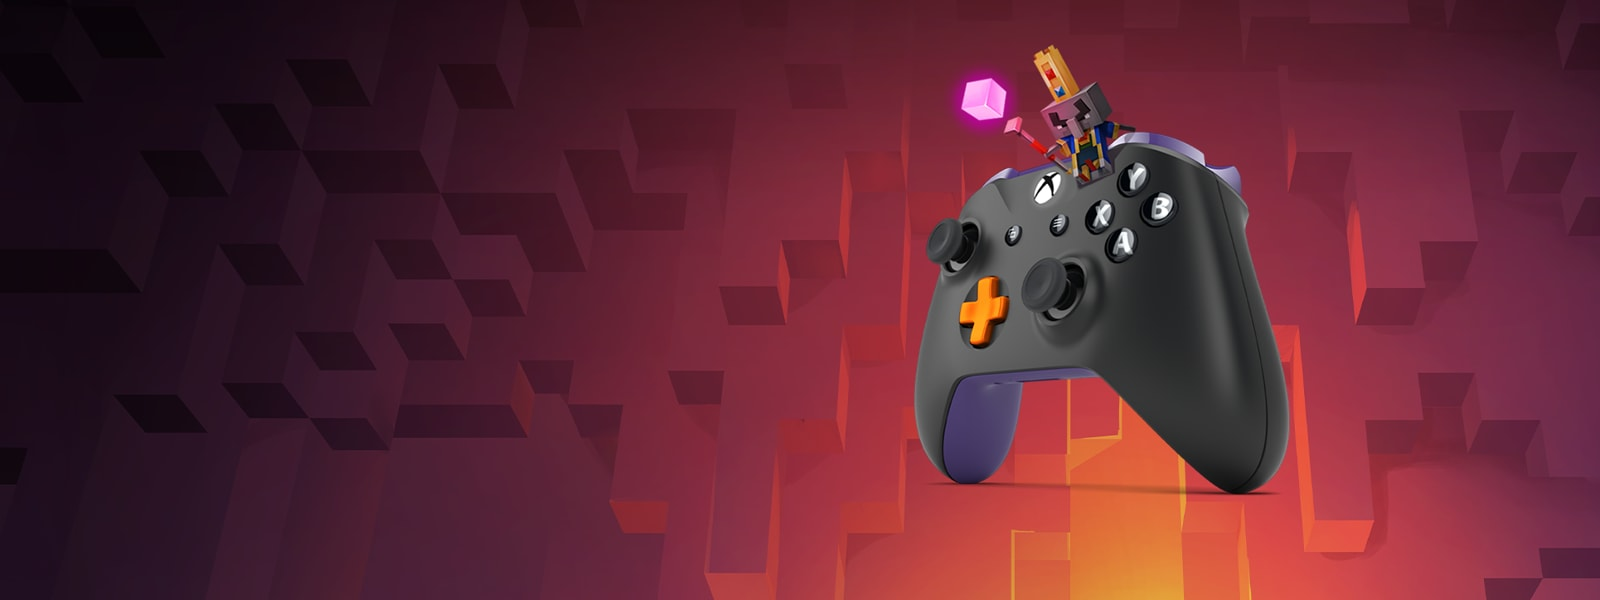 Minecraft dungeons mage sitting atop a black xbox one controller with an orange d pad.